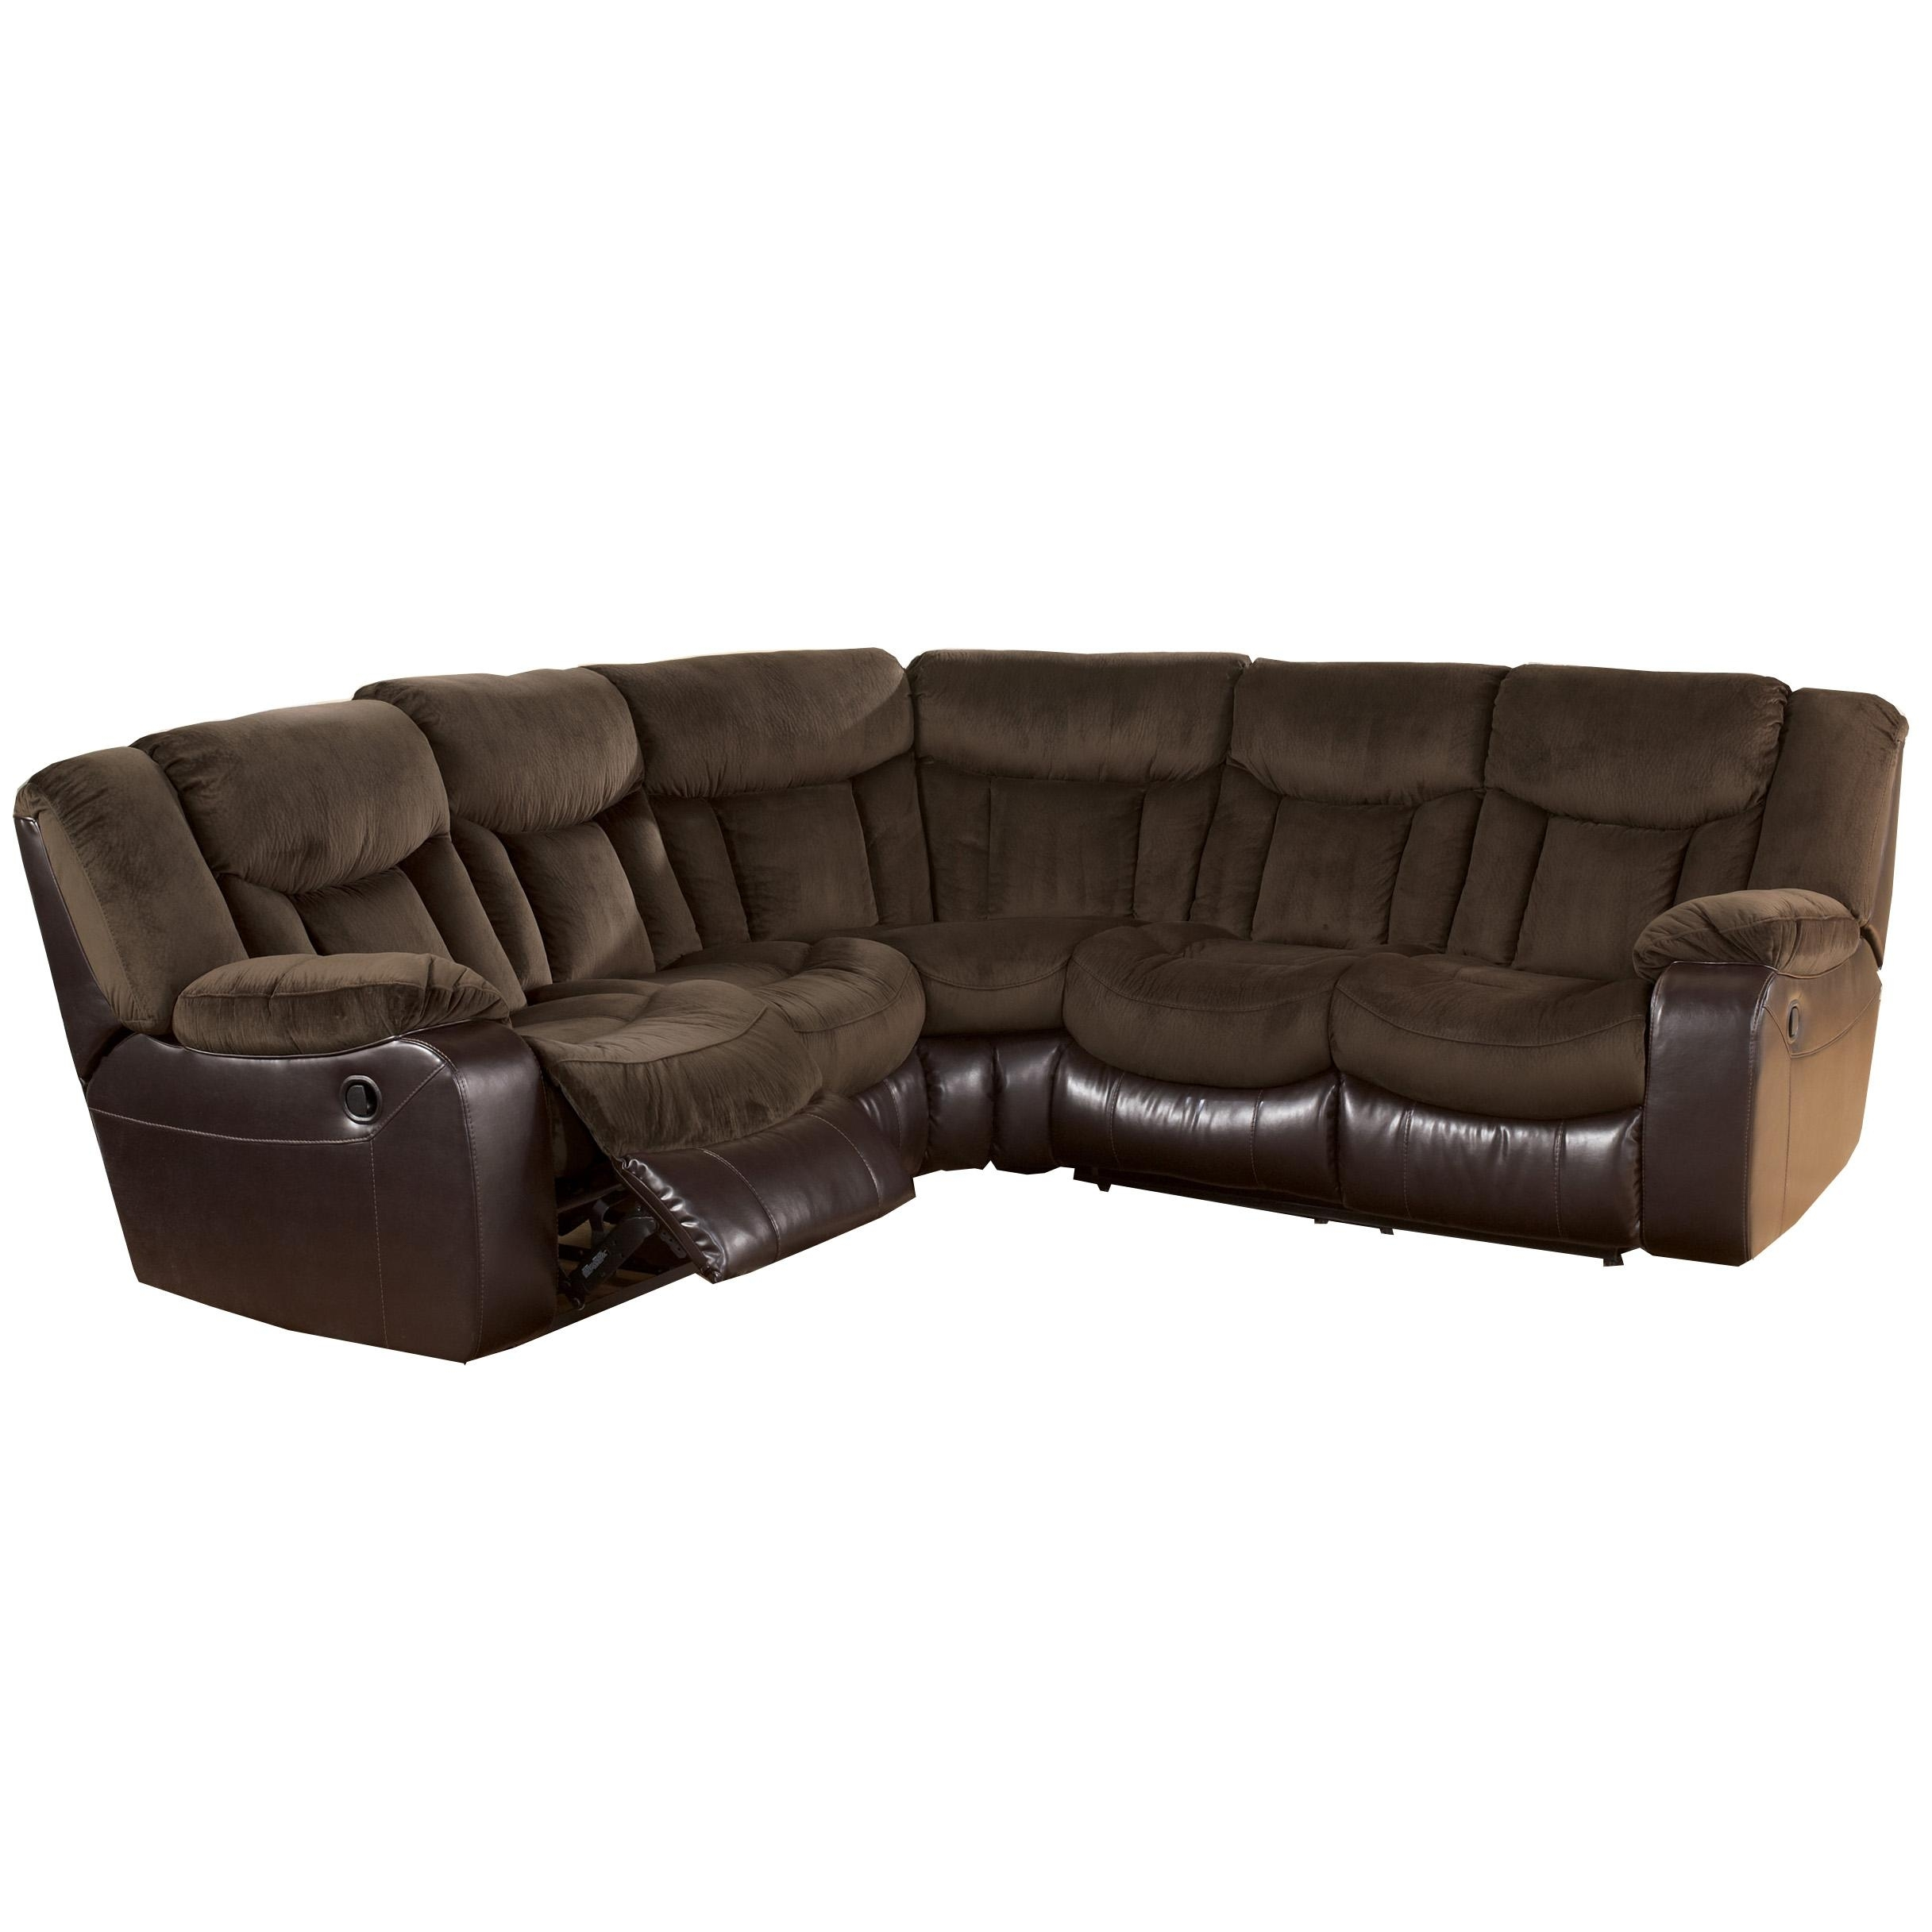 10+ Choices Of Homemakers Sectional Sofas